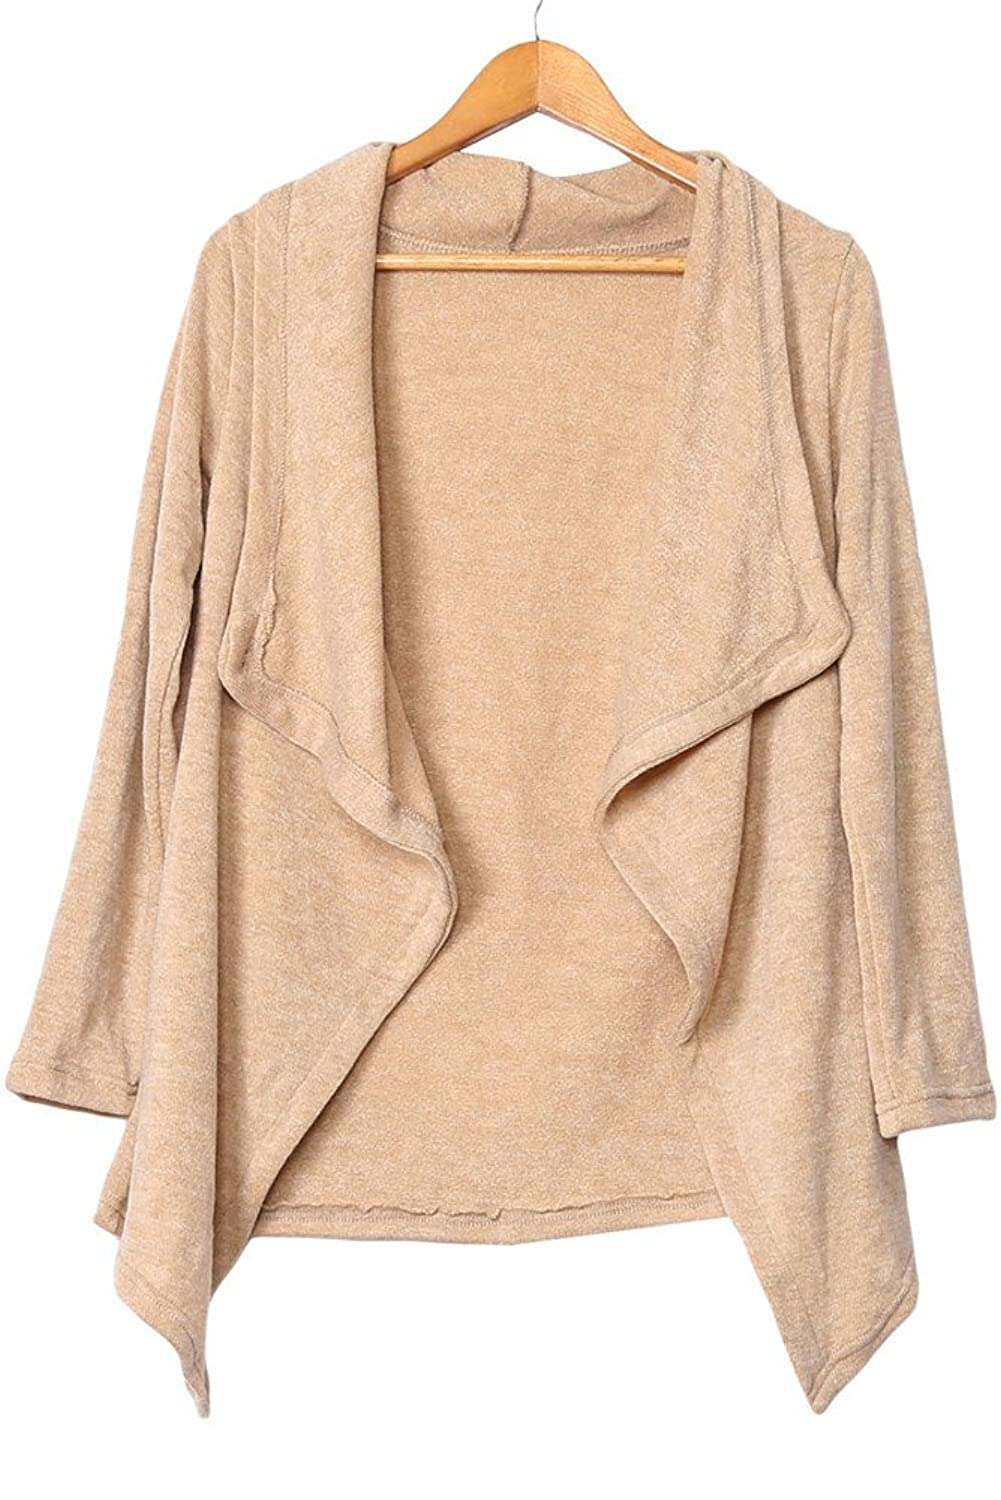 Ussuperstar Women's Go-to 3/4 Sleeve Asymmetric Wrapped Cardigan Sweater